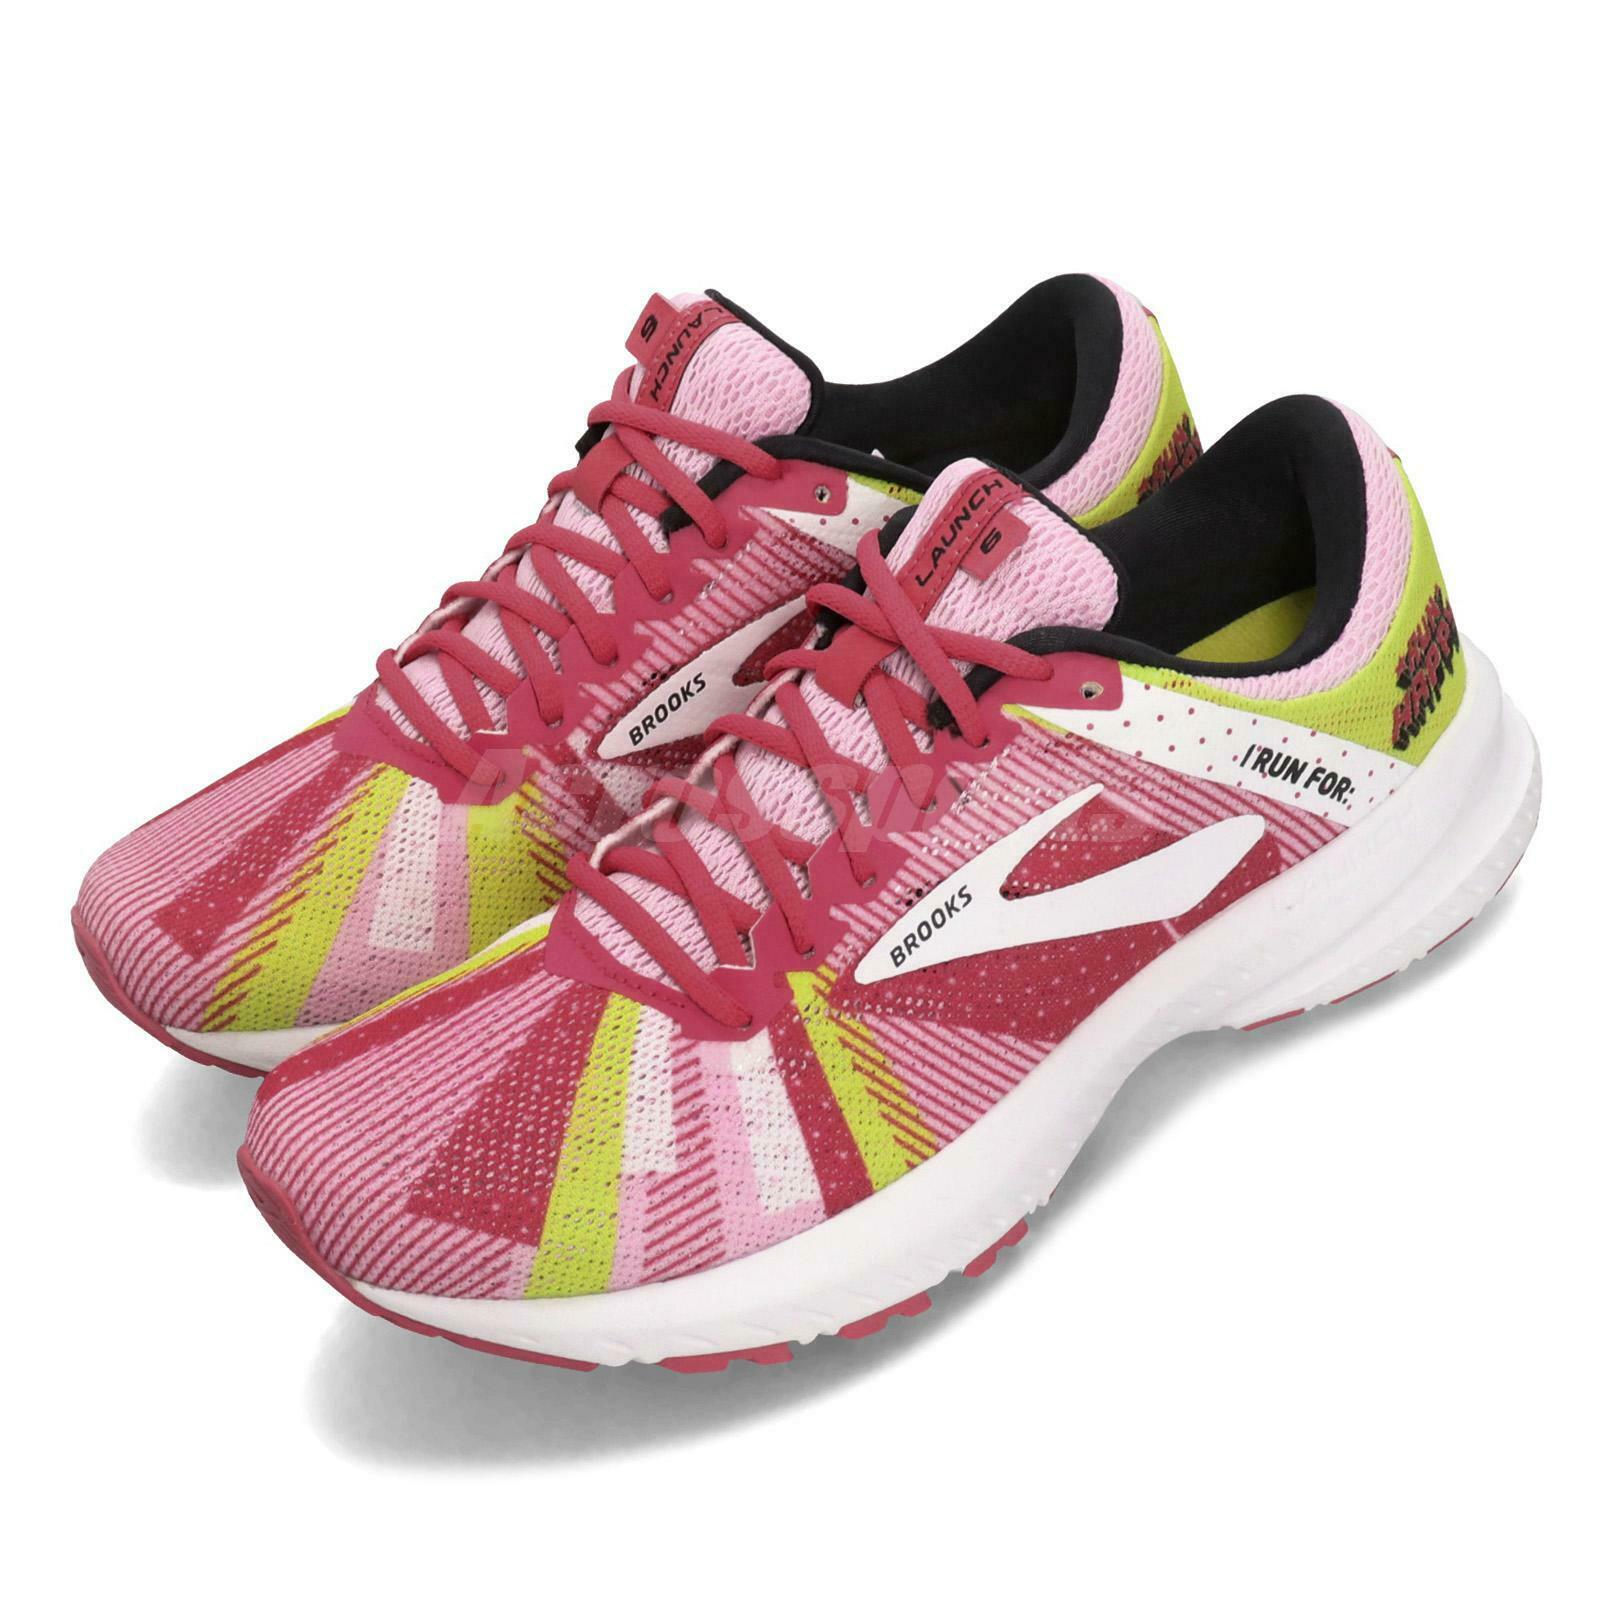 Brooks Launch 6 Happy Run Special Pink Yellow White  Women Running shoes 120285 1B  free delivery and returns